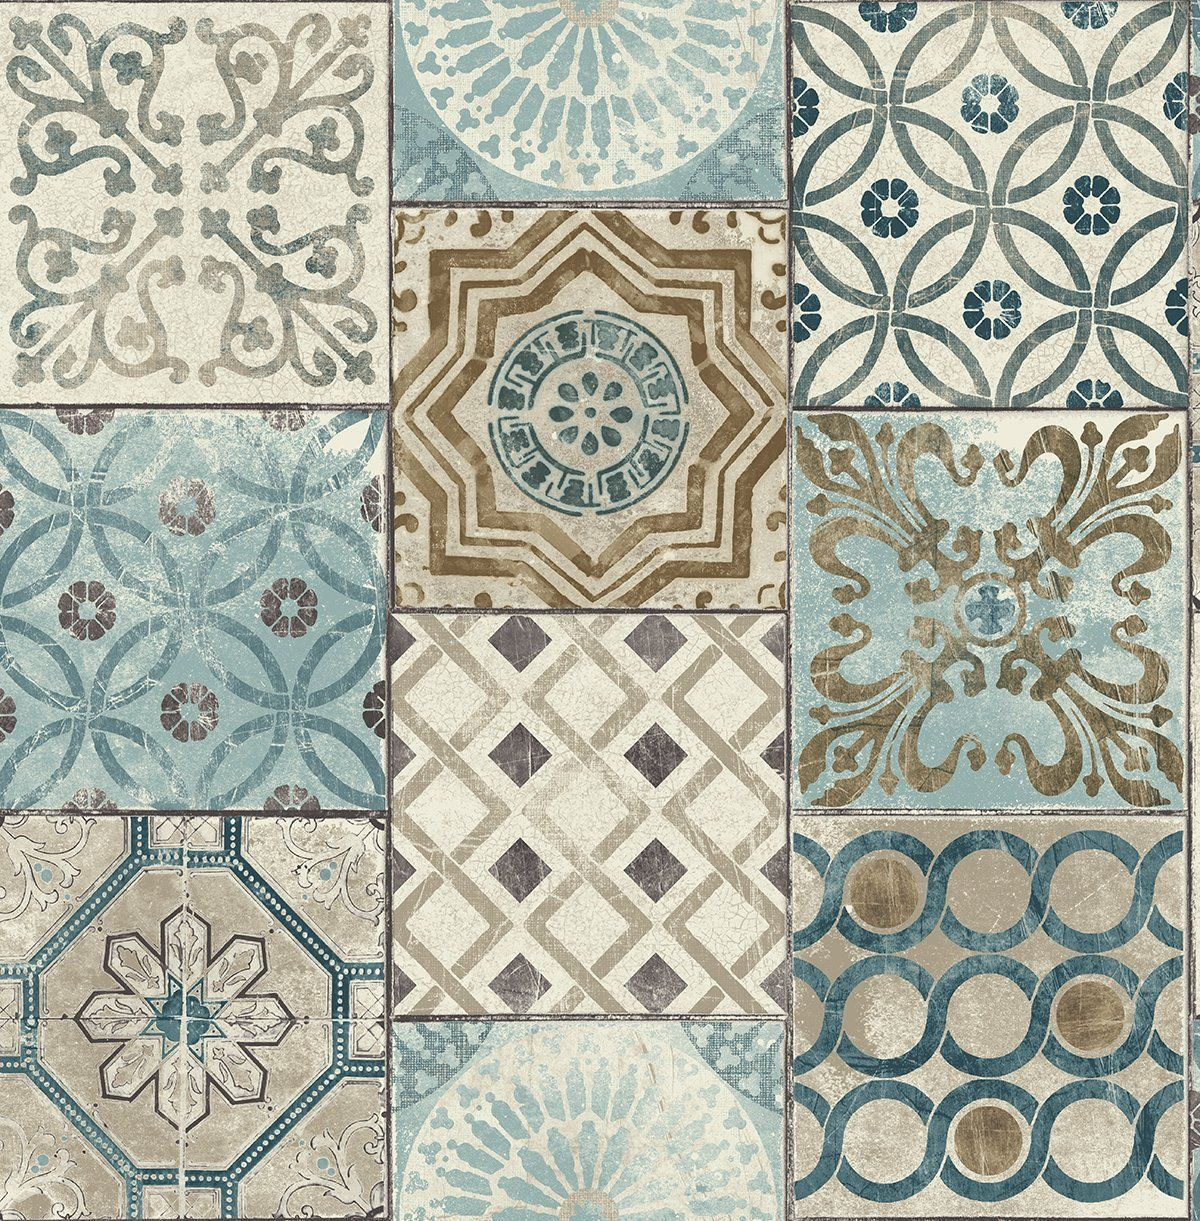 Nextwall Moroccan Style Peel And Stick Mosaic Tile Wallpaper Blue Copper Grey Amazon Com Patchwork Tiles Stick On Tiles Moroccan Tile